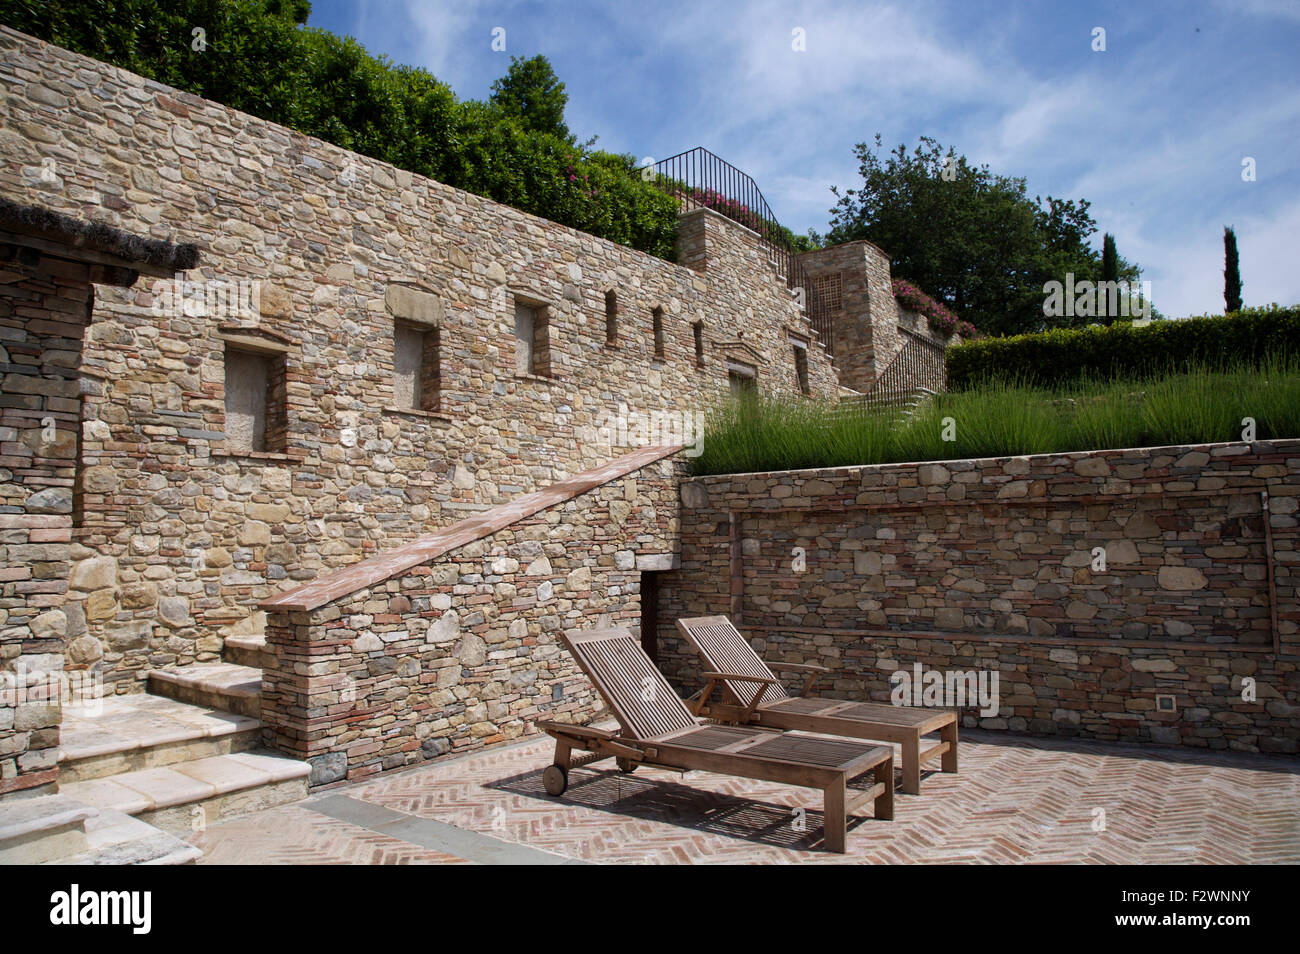 Wooden Loungers On Sunken Patio With Stone Steps And Walls In Italian Country Garden